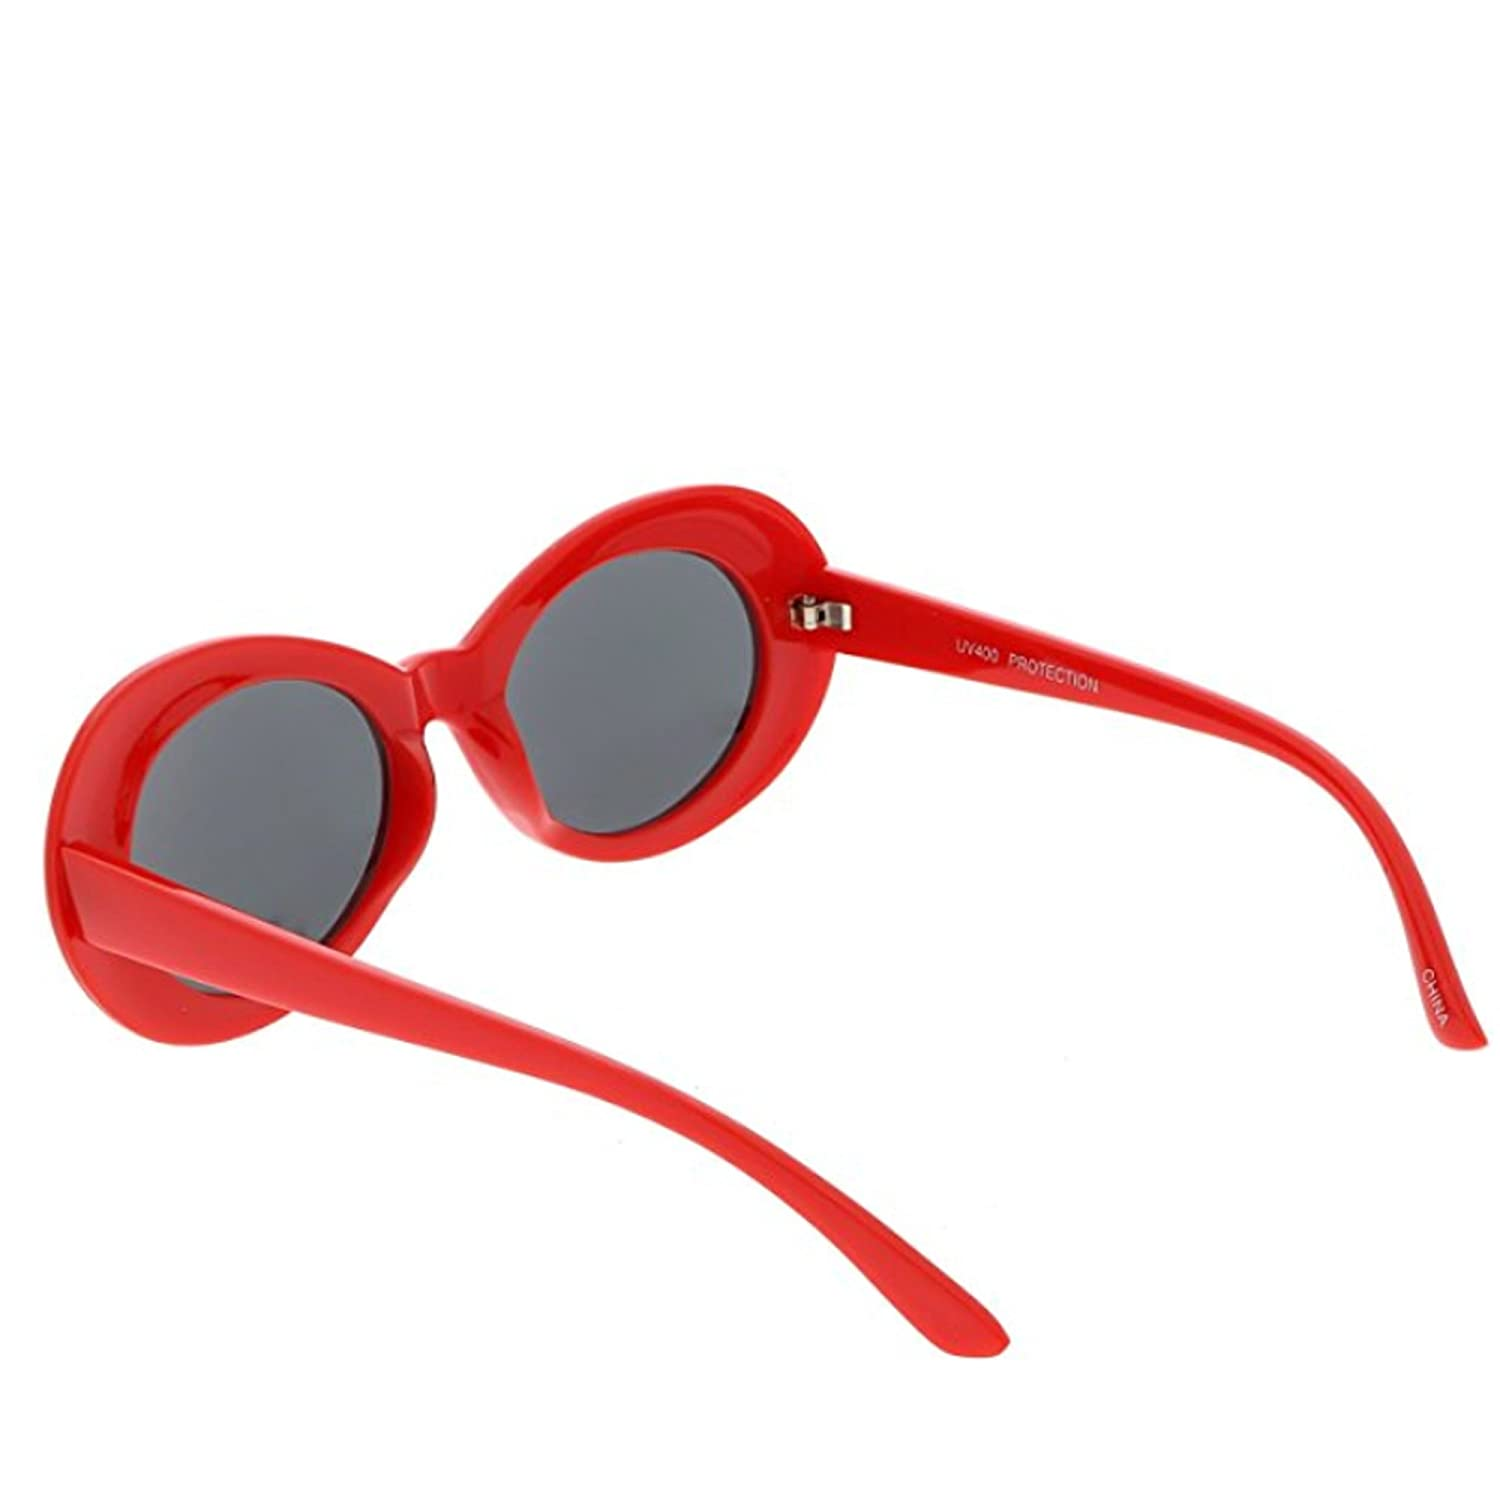 FOURCHEN Clout Goggles Sunglasses for kids Bold Retro Oval Round Lens FOURCHEN Bold Retro Oval Mod Thick Frame Sunglasses Round Lens Clout Goggles 100/% UV Proof Sunglasses for girls//boys Toddler Sunglasses Kids Sunglasses